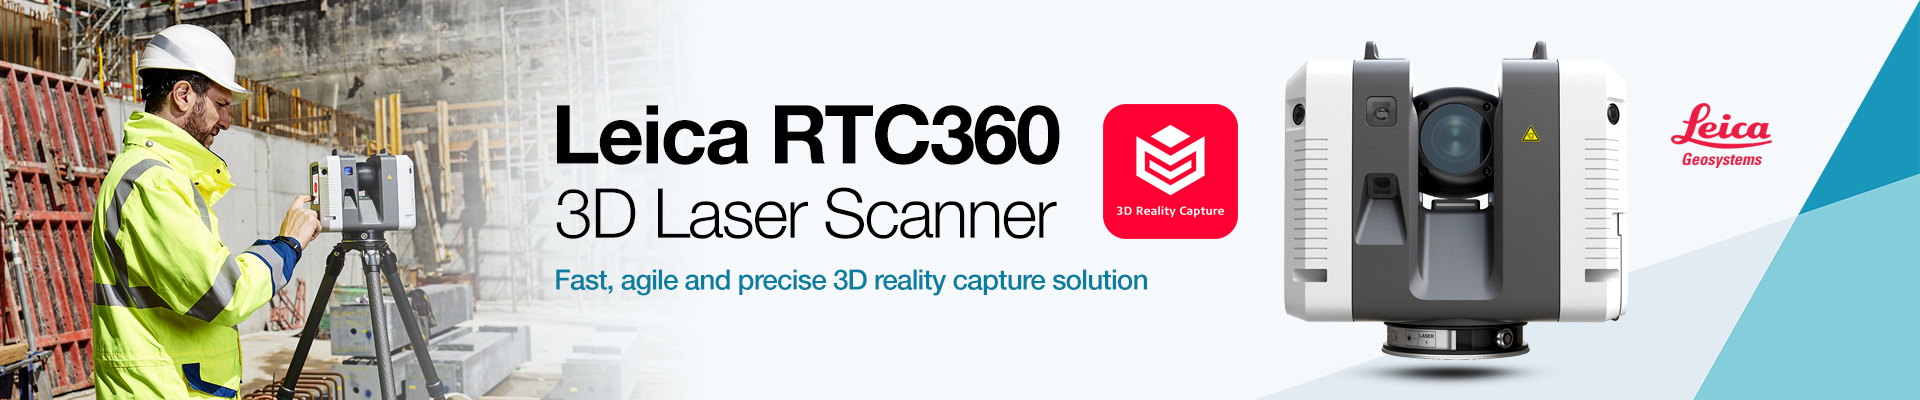 Leica RTC360 3D Reality Capture Solution